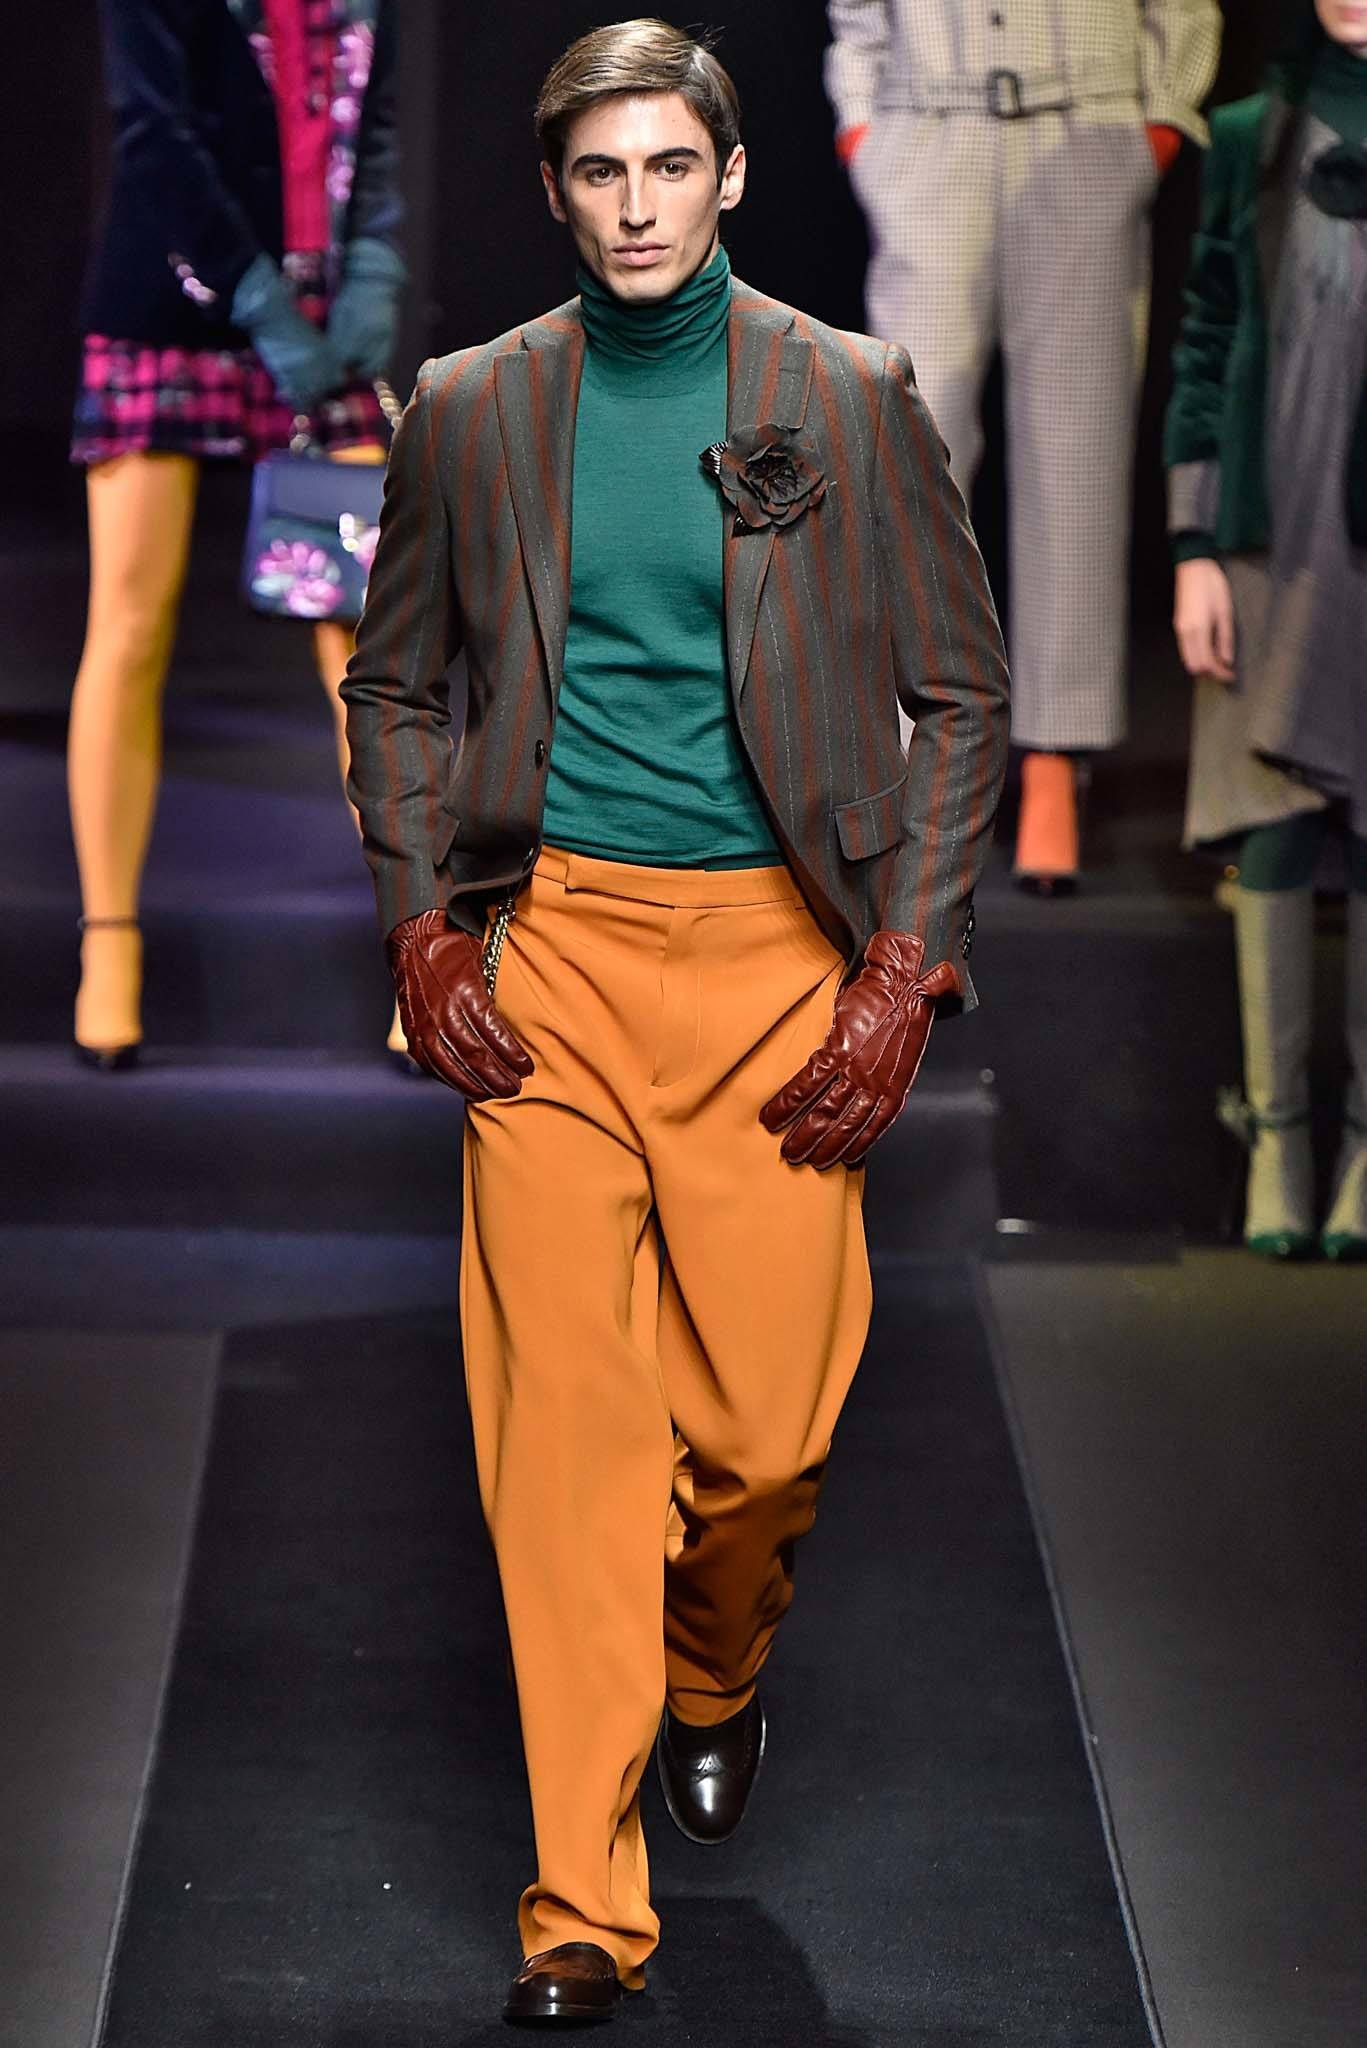 Milan Fashion Week Men's AW18: Male model on catwalk with side part comb over on light brown hair